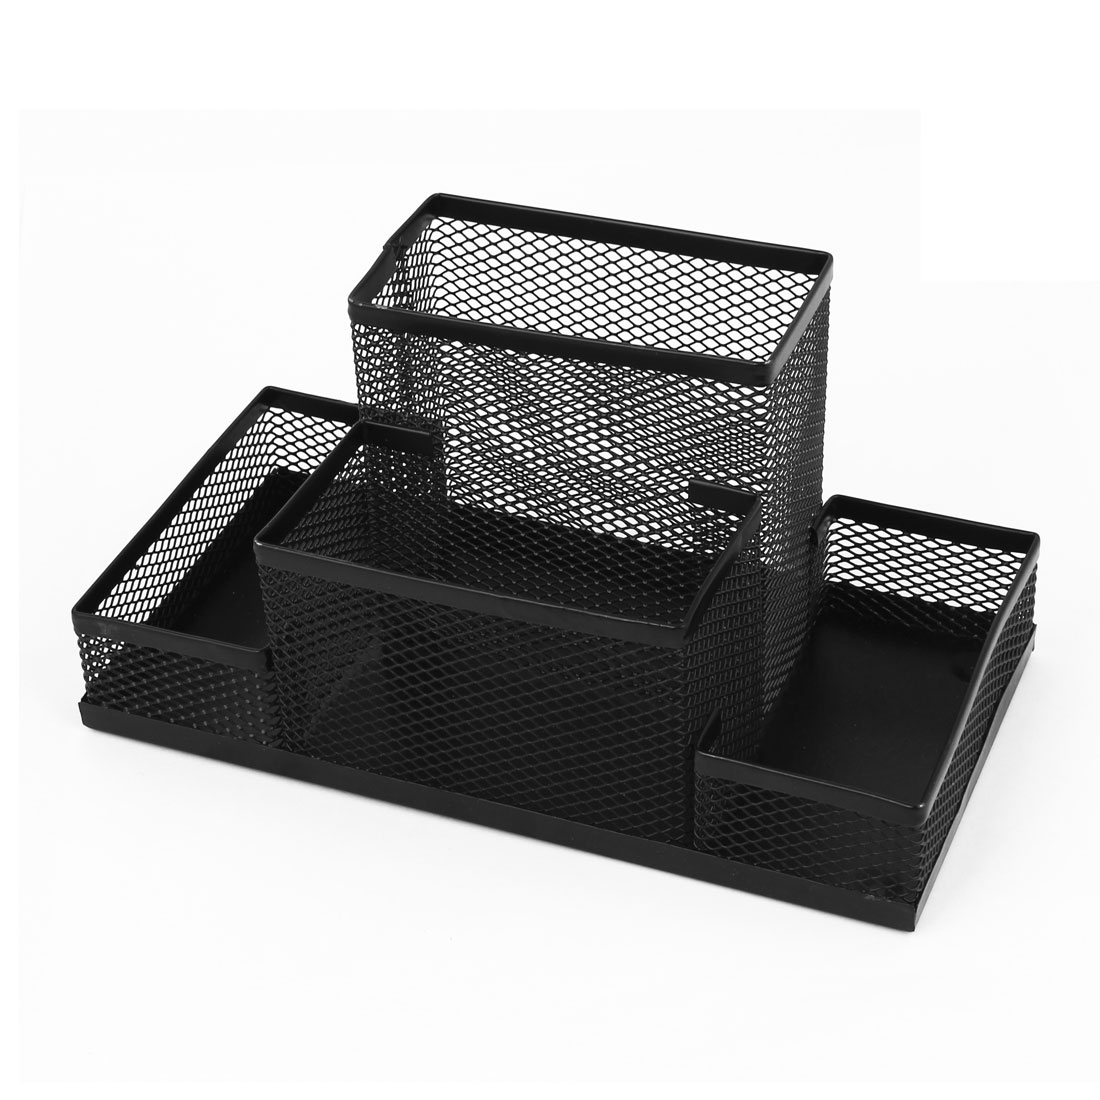 Unique Bargains Functional 4 Compartment Wire Mesh Pen Pencil Holder Desk Organizer